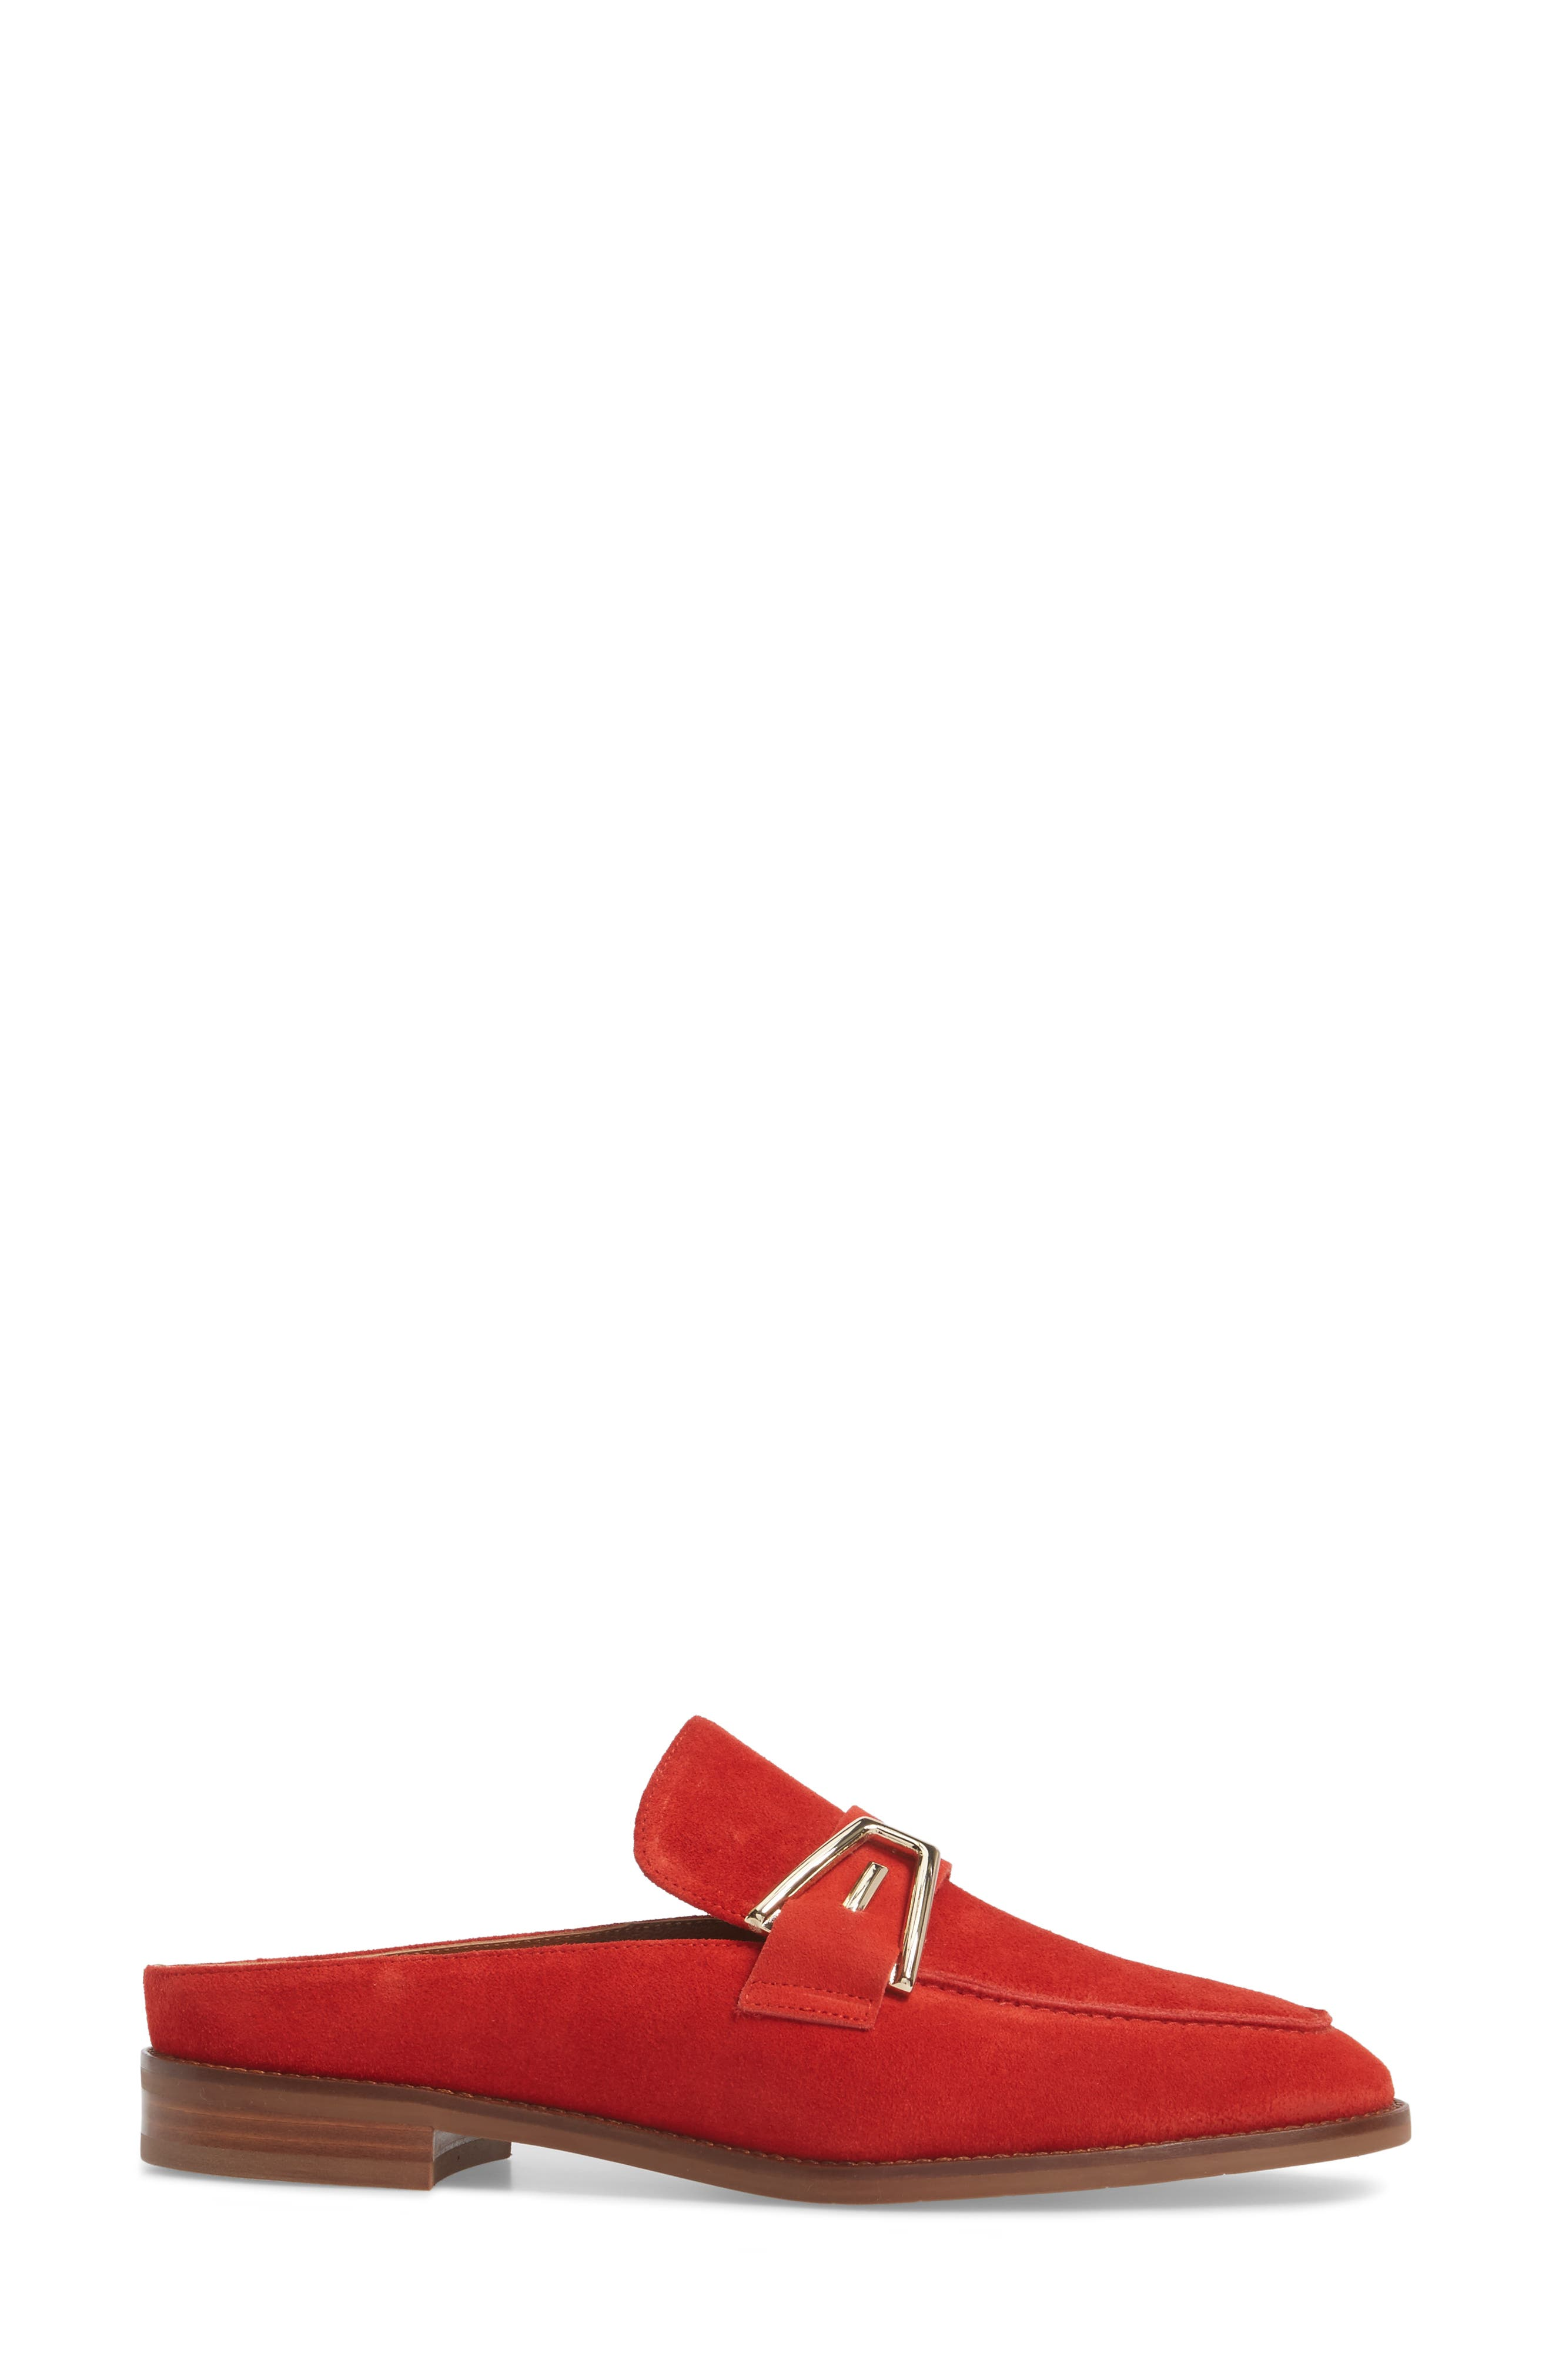 Tosca Loafer Mule,                             Alternate thumbnail 6, color,